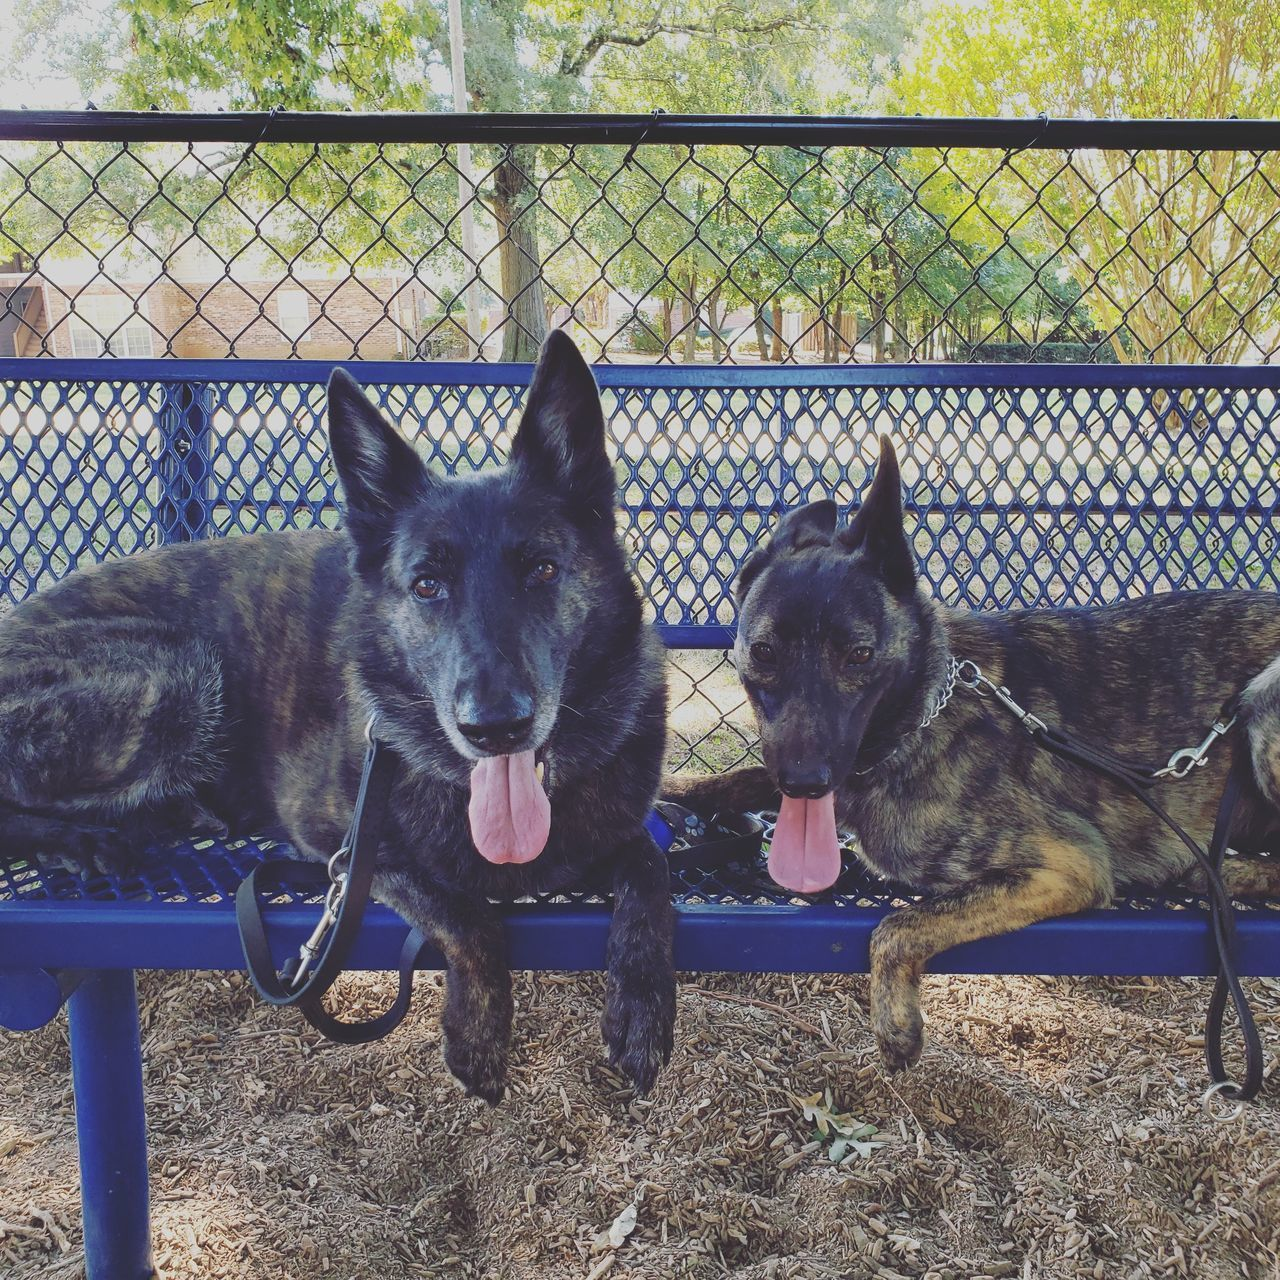 PORTRAIT OF DOGS ON THE FENCE